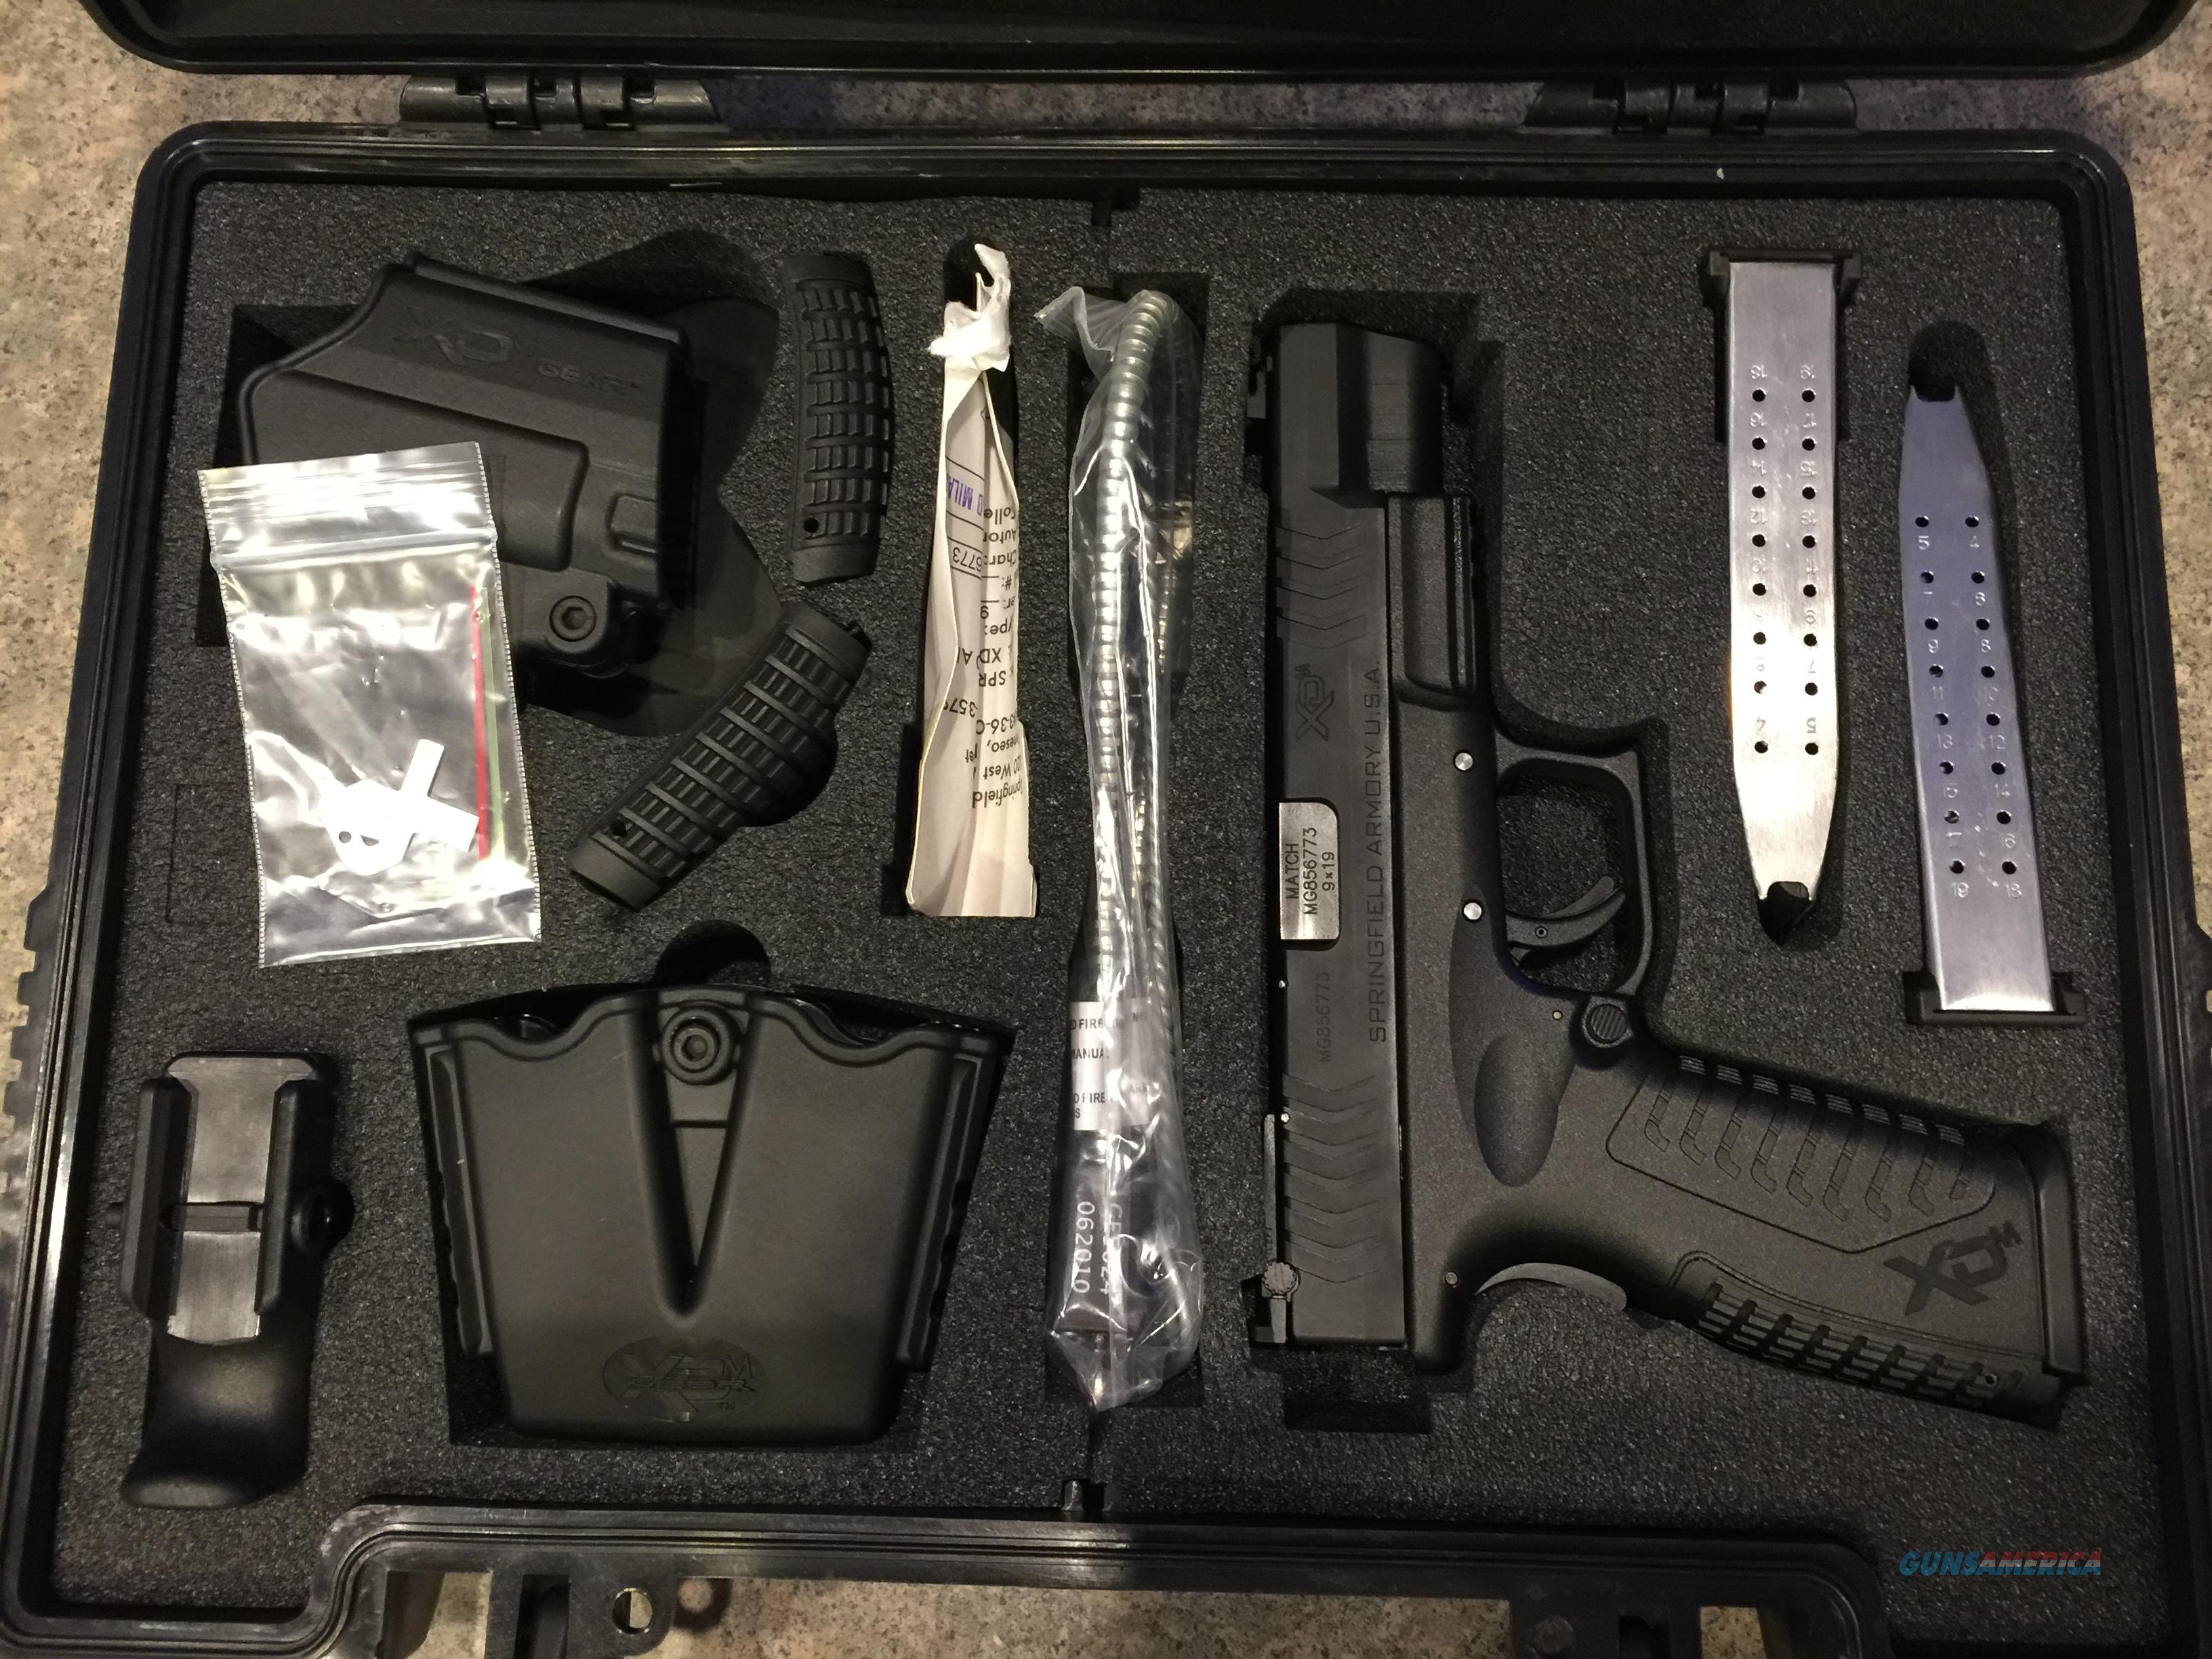 Xdm95259bhc xdm comp 9mm 5.25 19rd springfield 3 mags  Guns > Pistols > Springfield Armory Pistols > XD-M